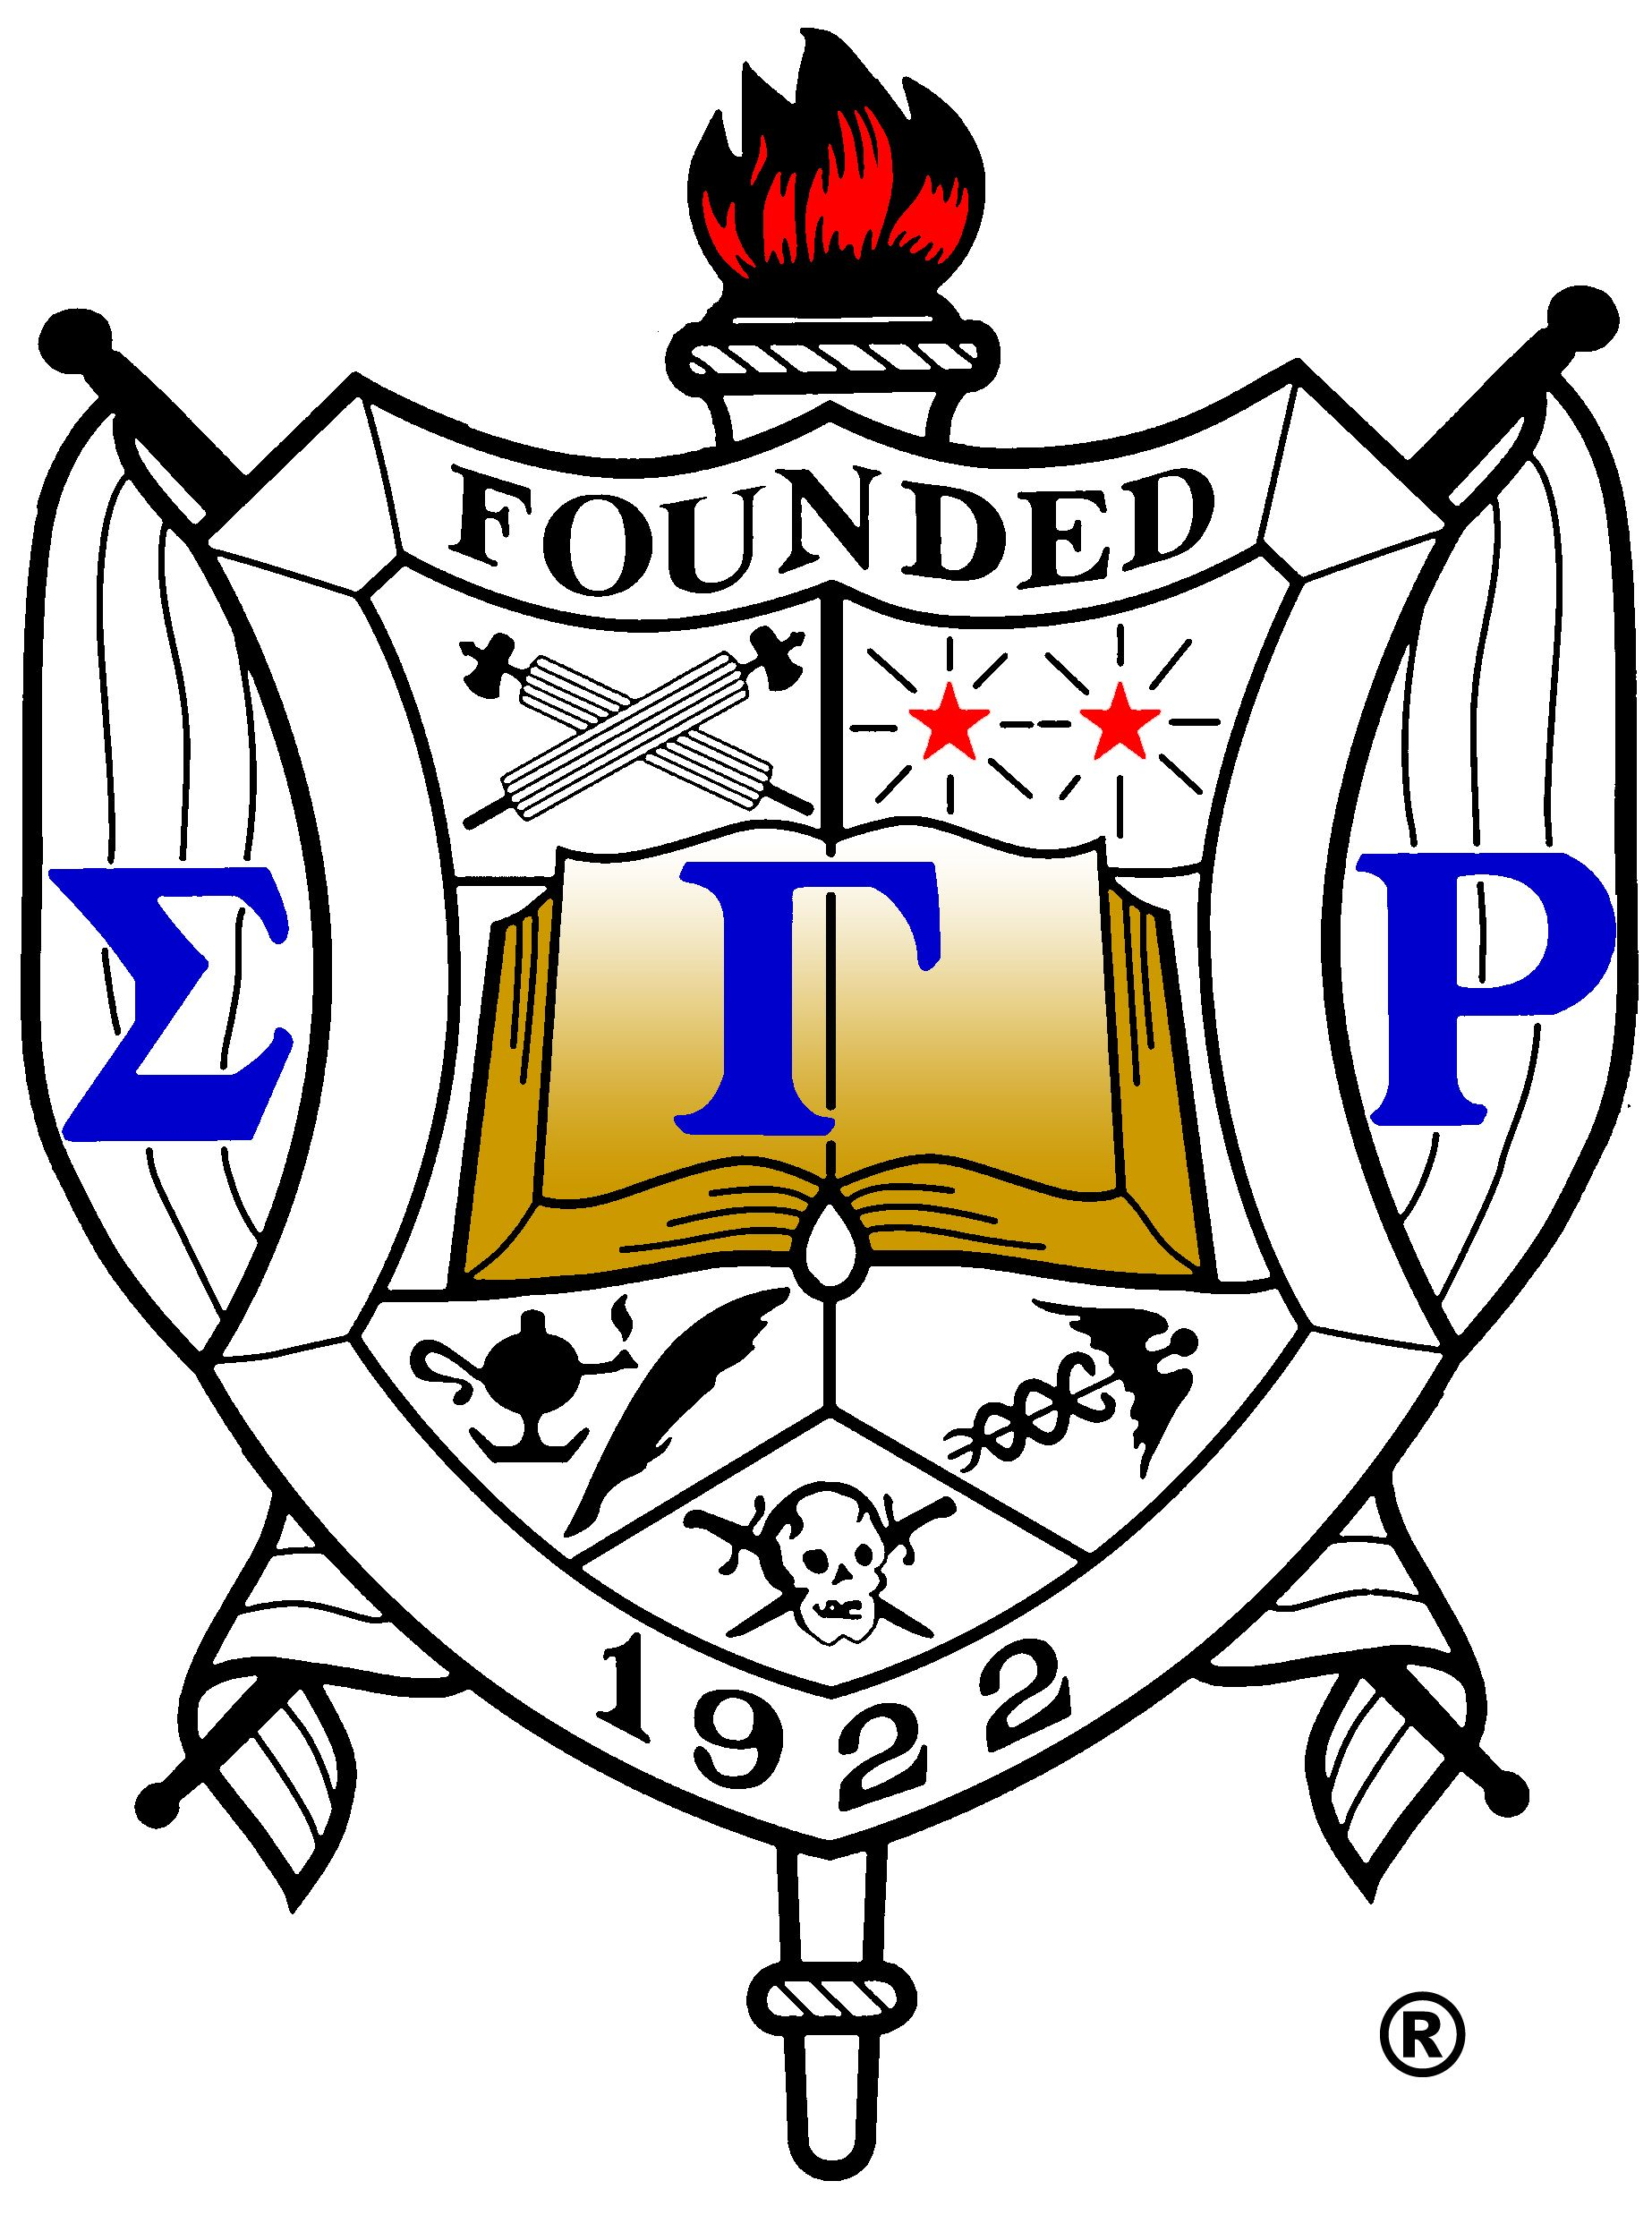 Sgrho official shield pi sigma alumnae chapter of sigma gamma proudly supporting sigma gamma rho week at wsu biocorpaavc